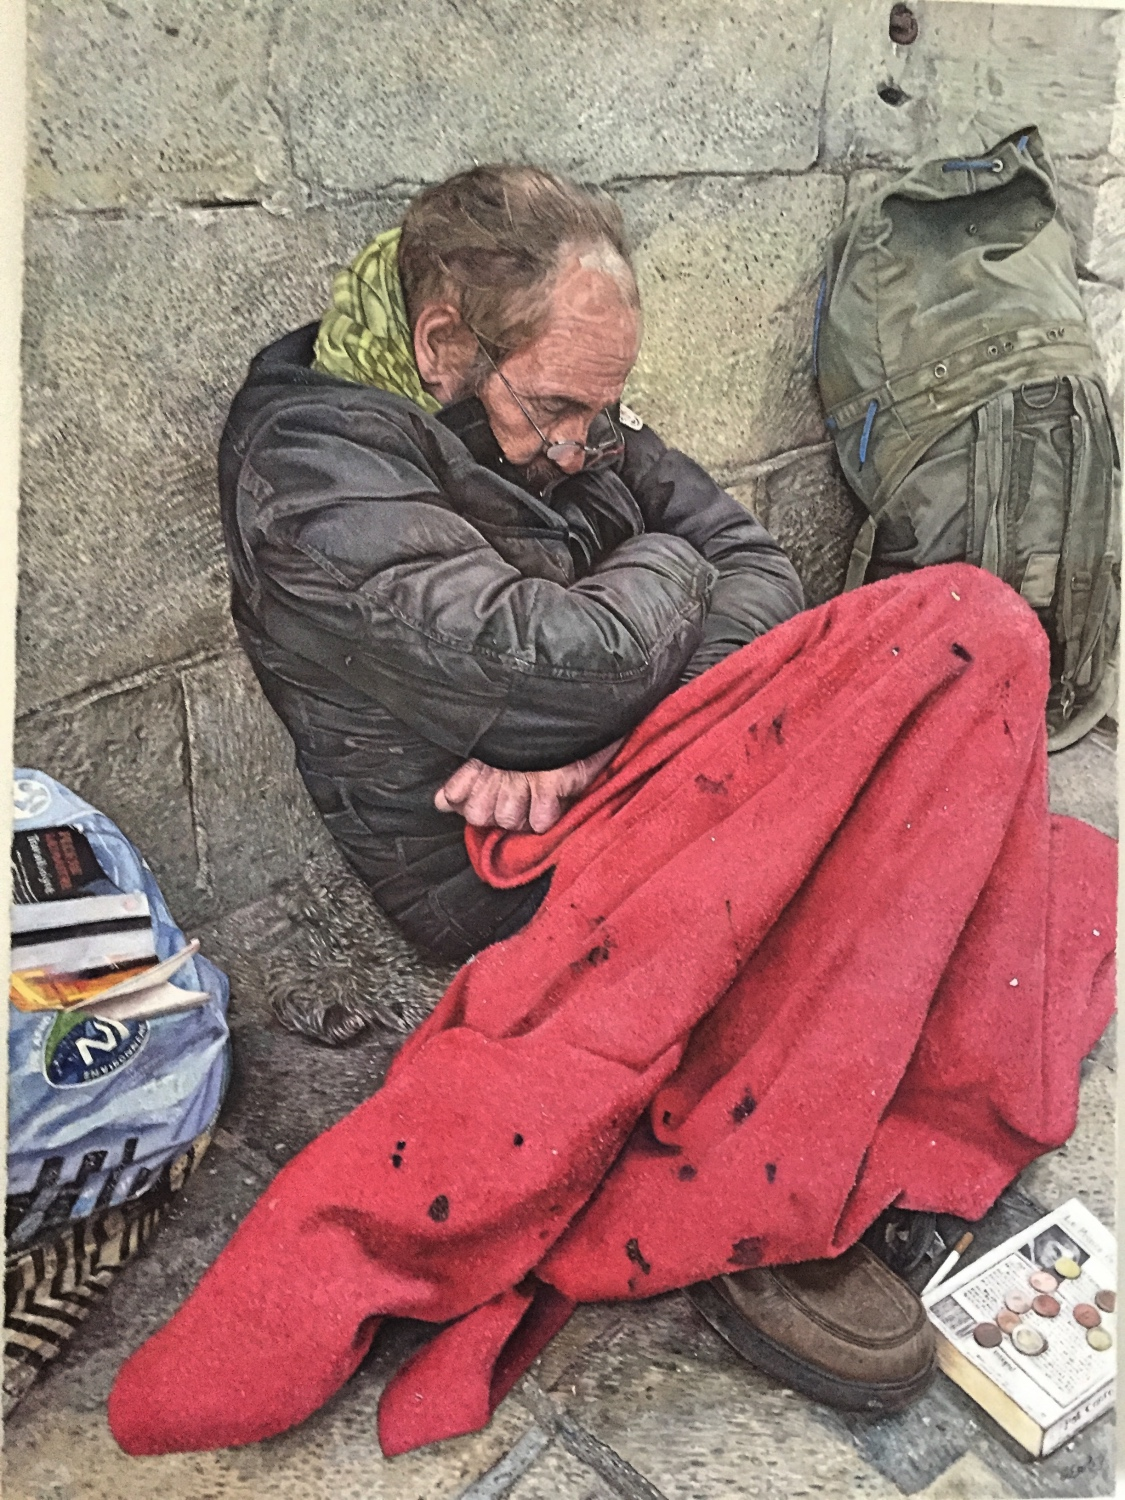 Homeless Man Carcassonne Oil Painting James Earley